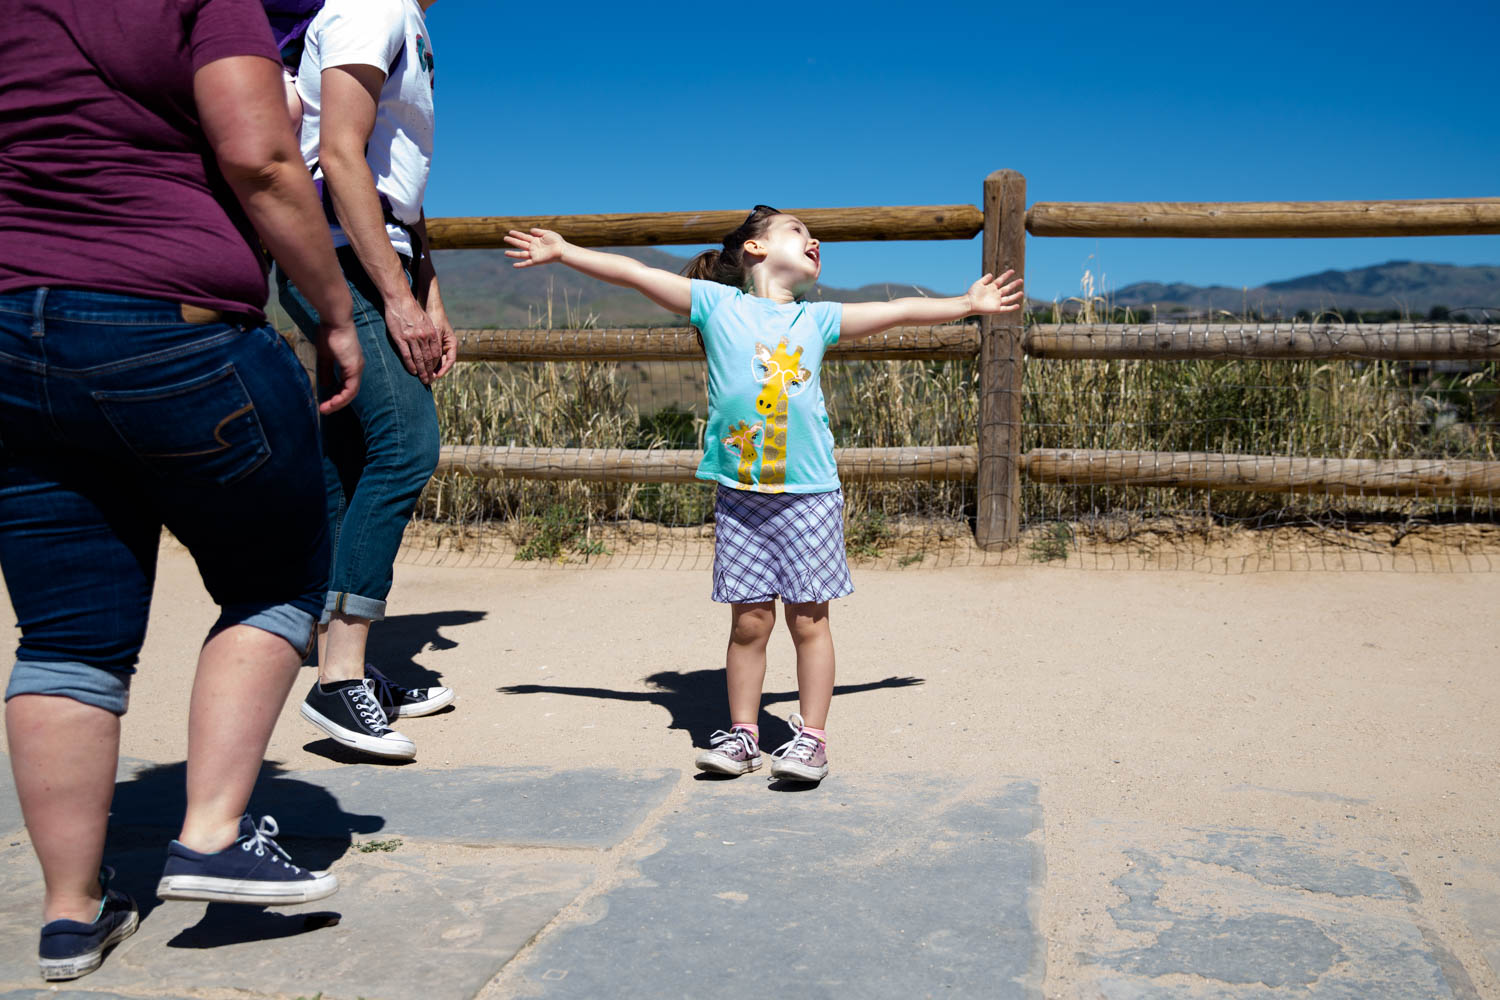 Little girl excited to get to the top of Camelsback Park trailhead overlooking the city of Boise. Waving arms wide and rejoicing.